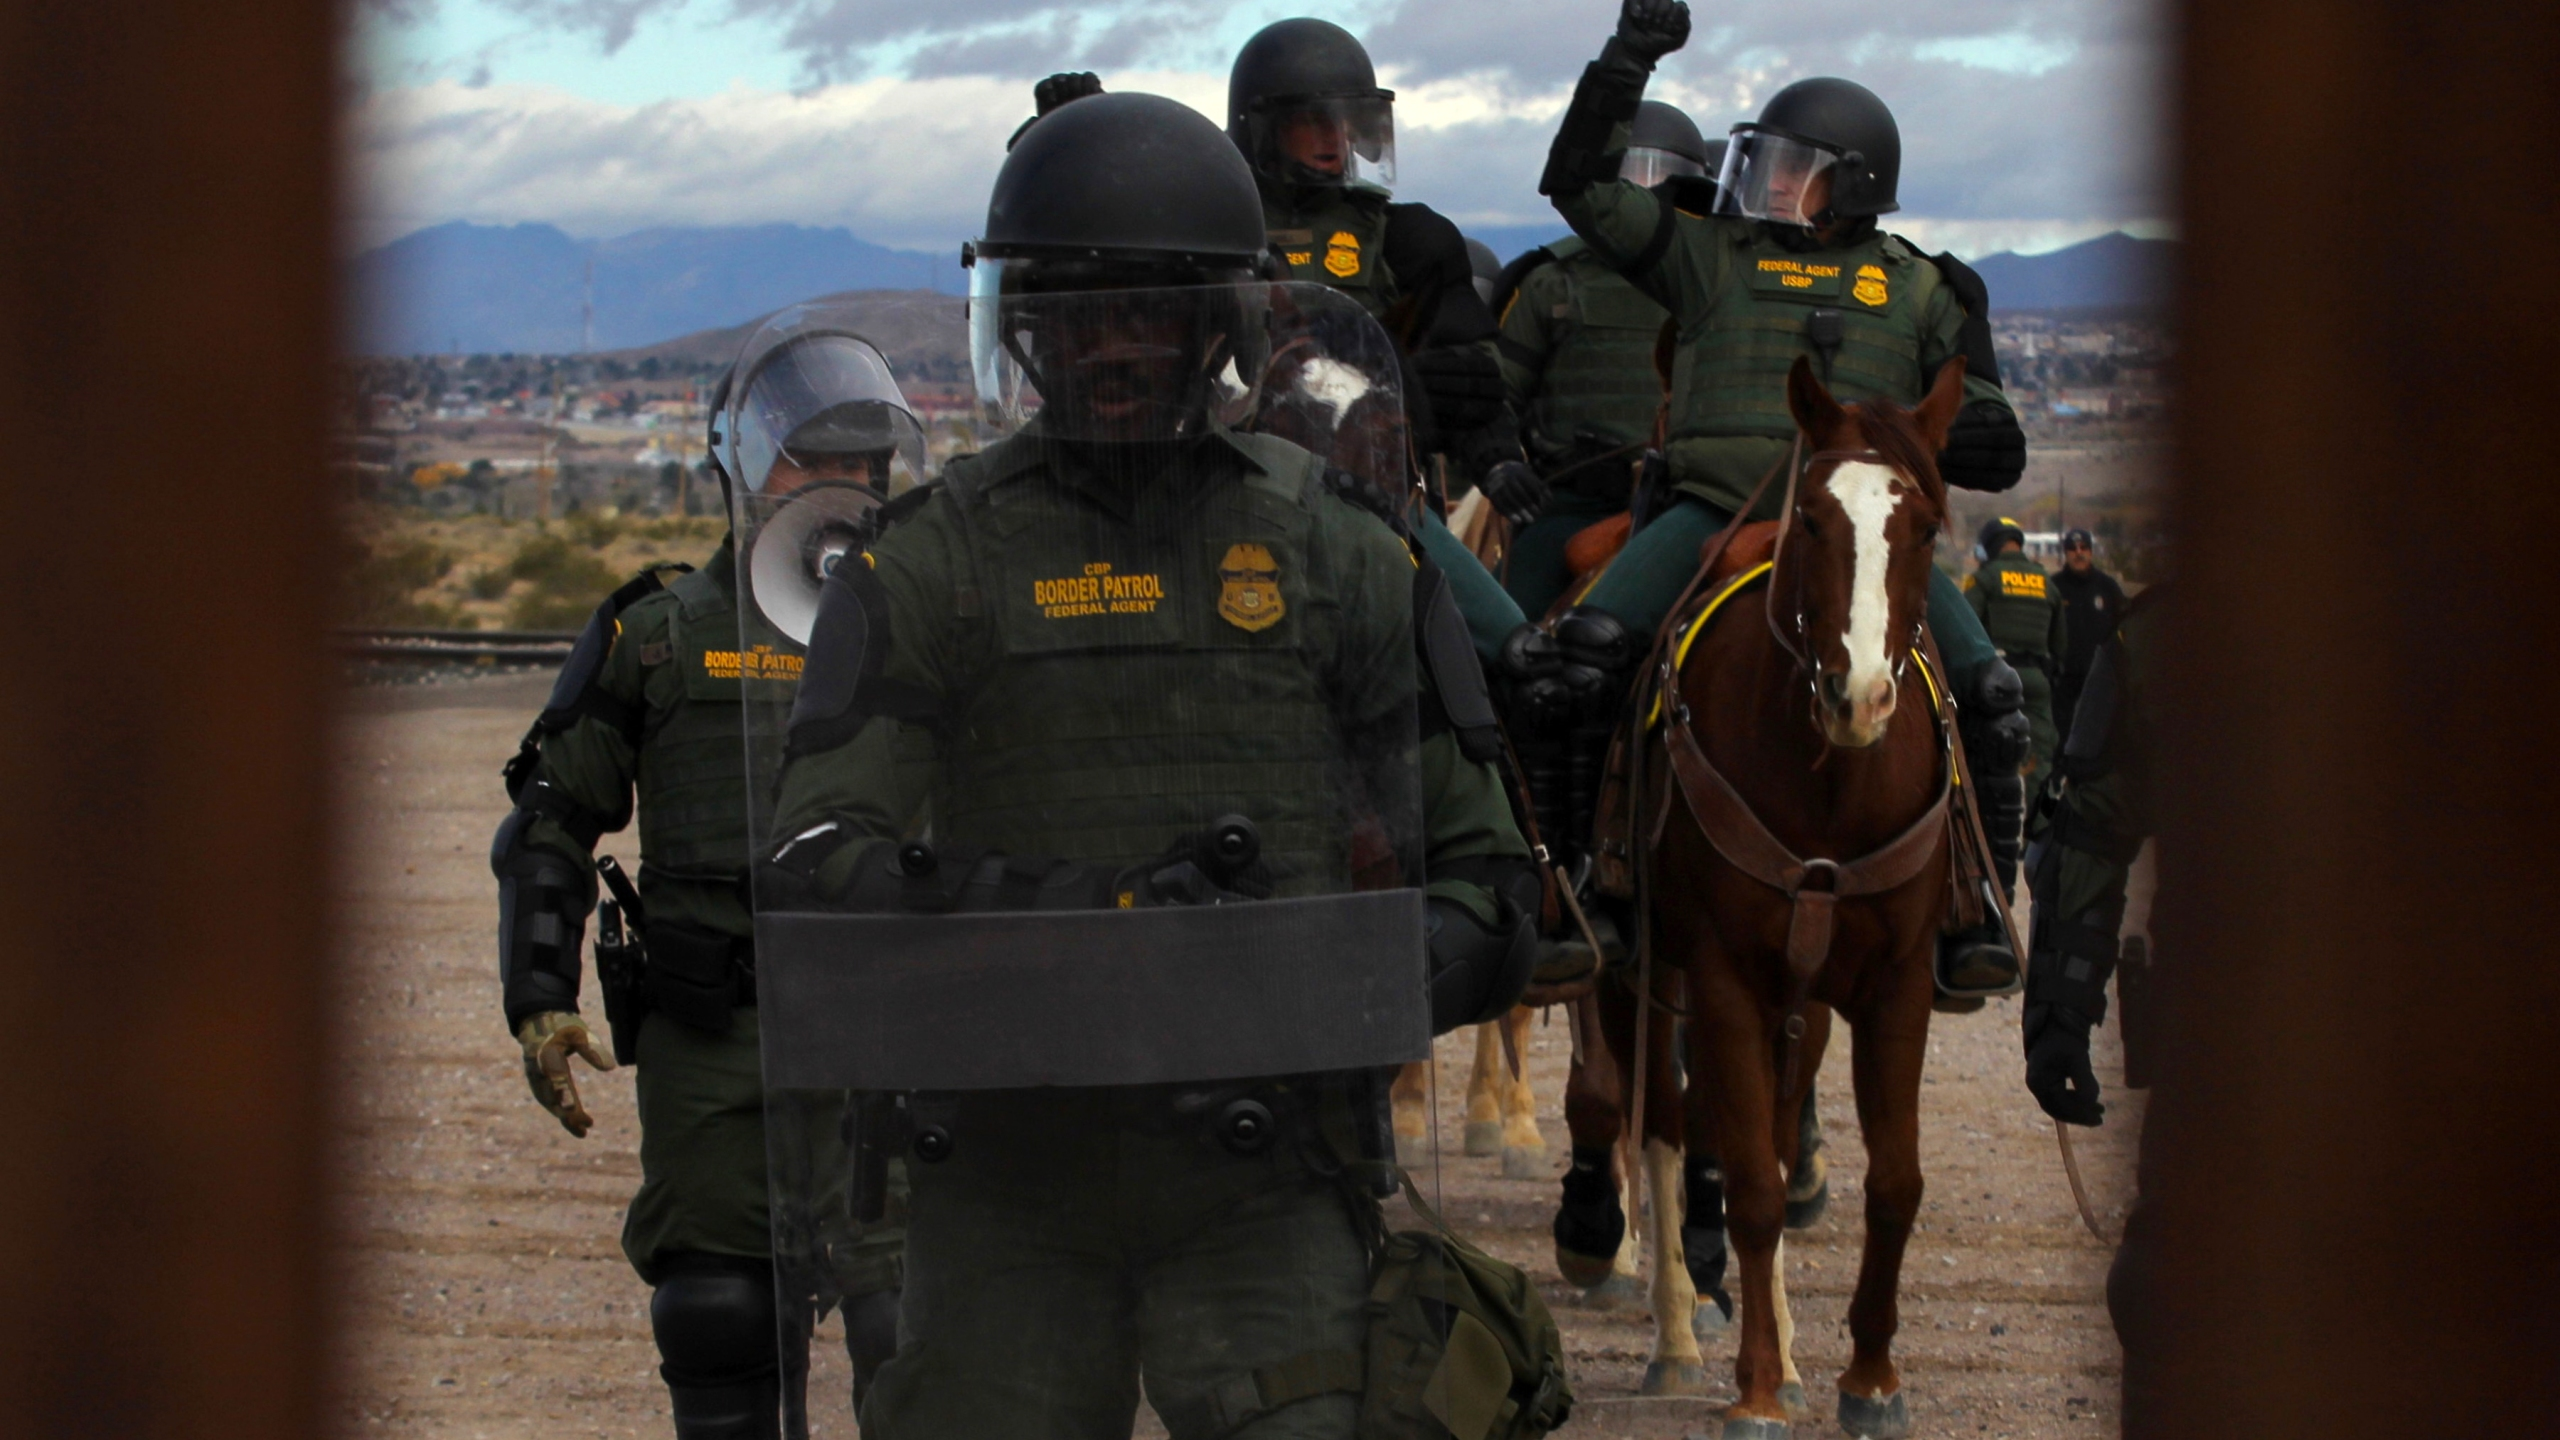 Members of the U.S. Border Patrol take part in a drill in along the U.S.-Mexico border on Nov. 30, 2018. (Credit: Herika Martinez / AFP / Getty Images)